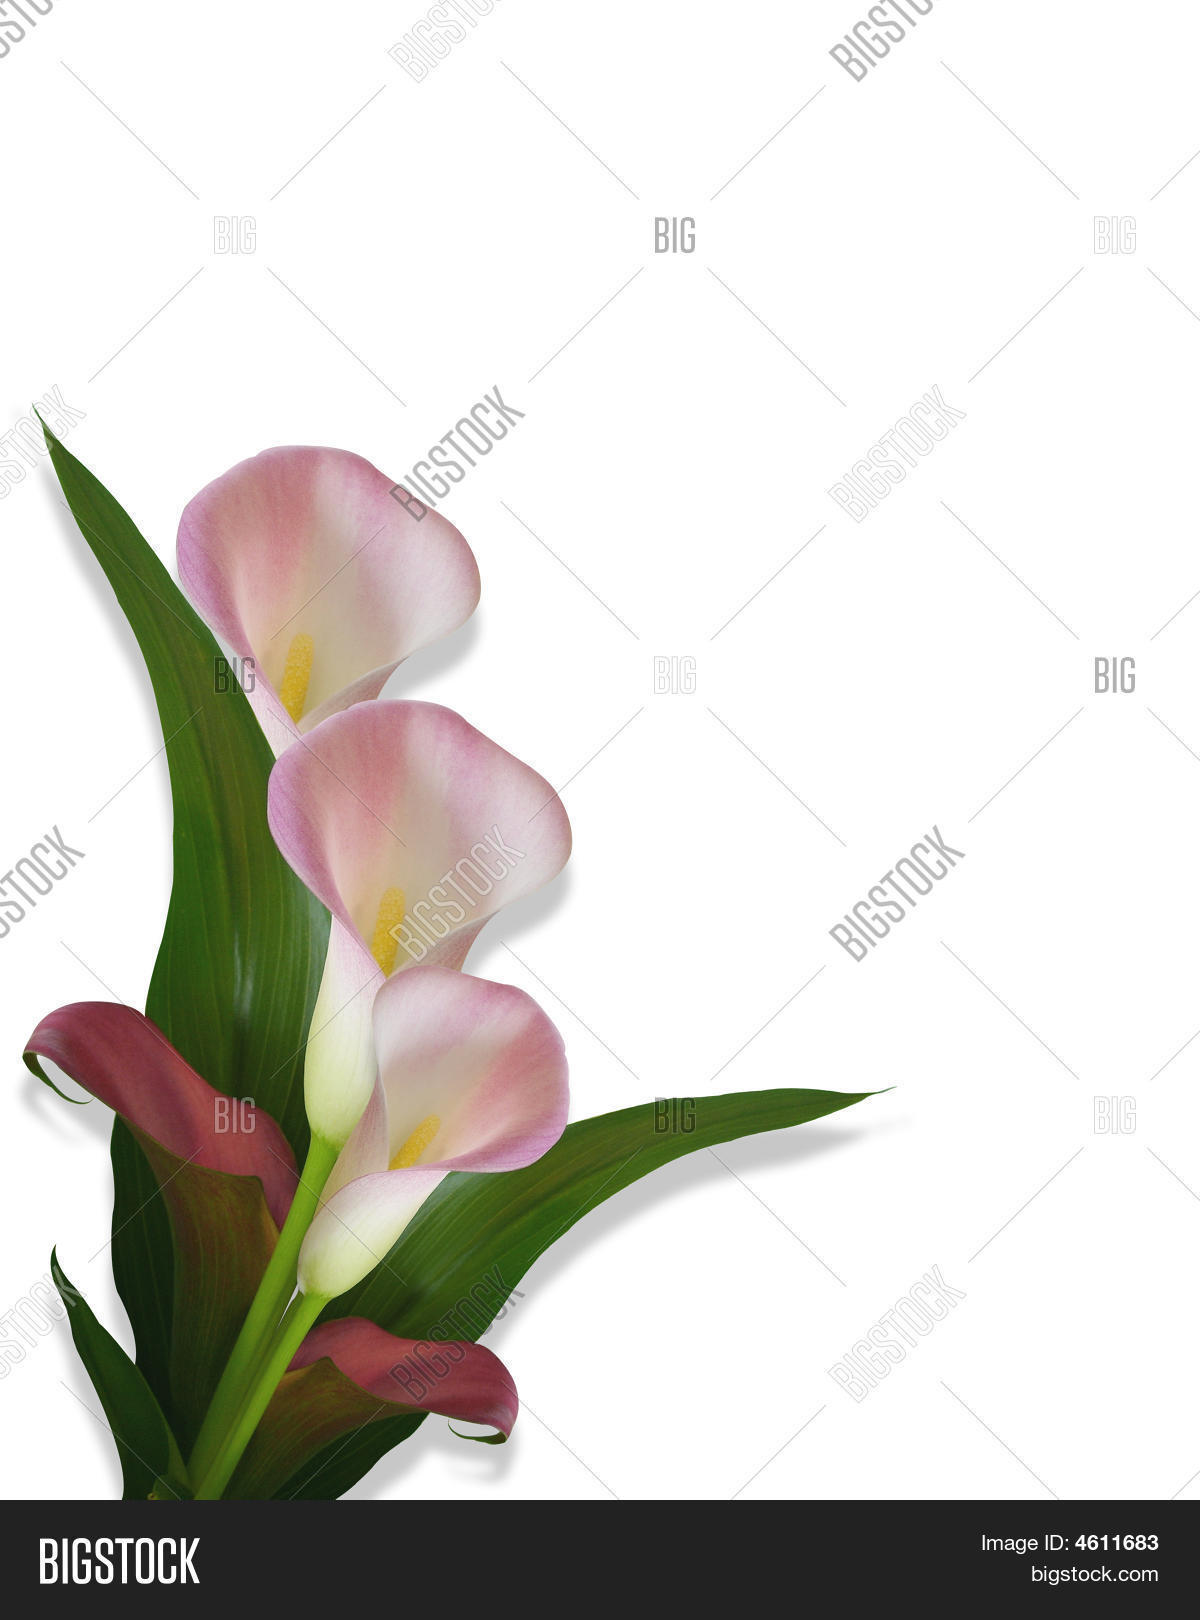 Calla Lilies Border Image & Photo (Free Trial).